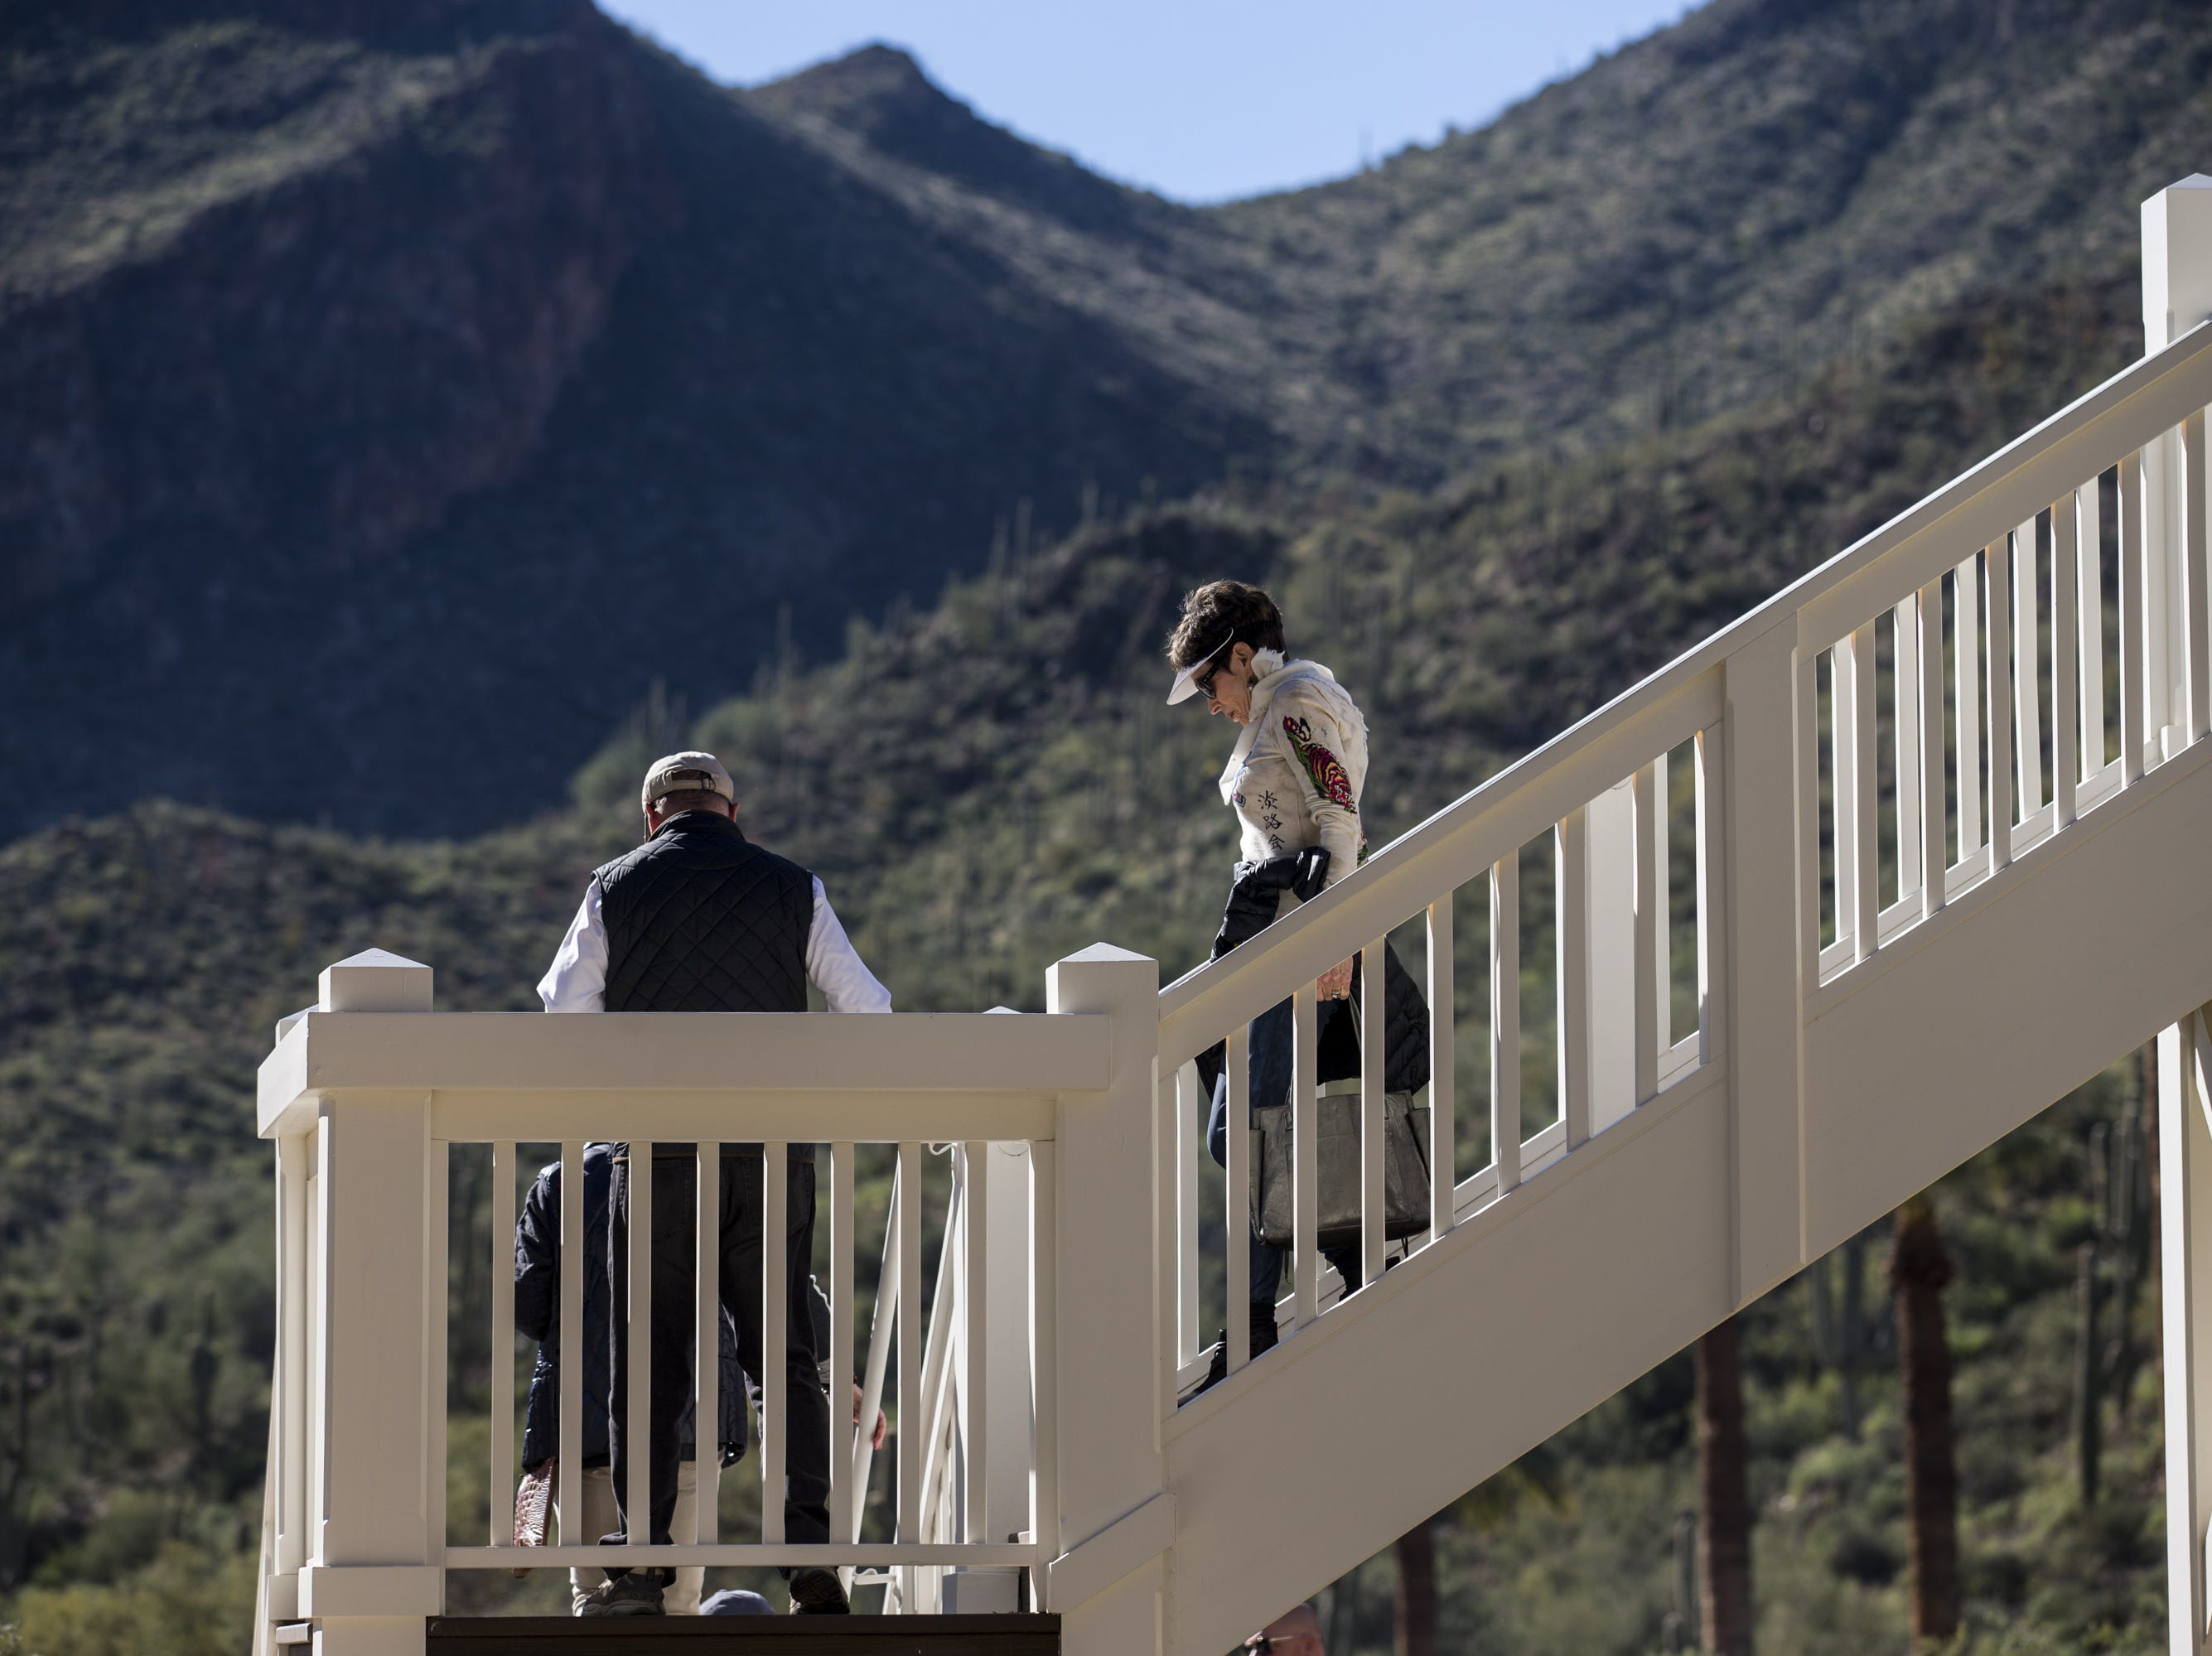 People tour the newly renovated Castle Hot Springs resort on Saturday, Dec. 8, 2018, in Morristown, Ariz. It has been 50 years since the resort has hosted any guests.